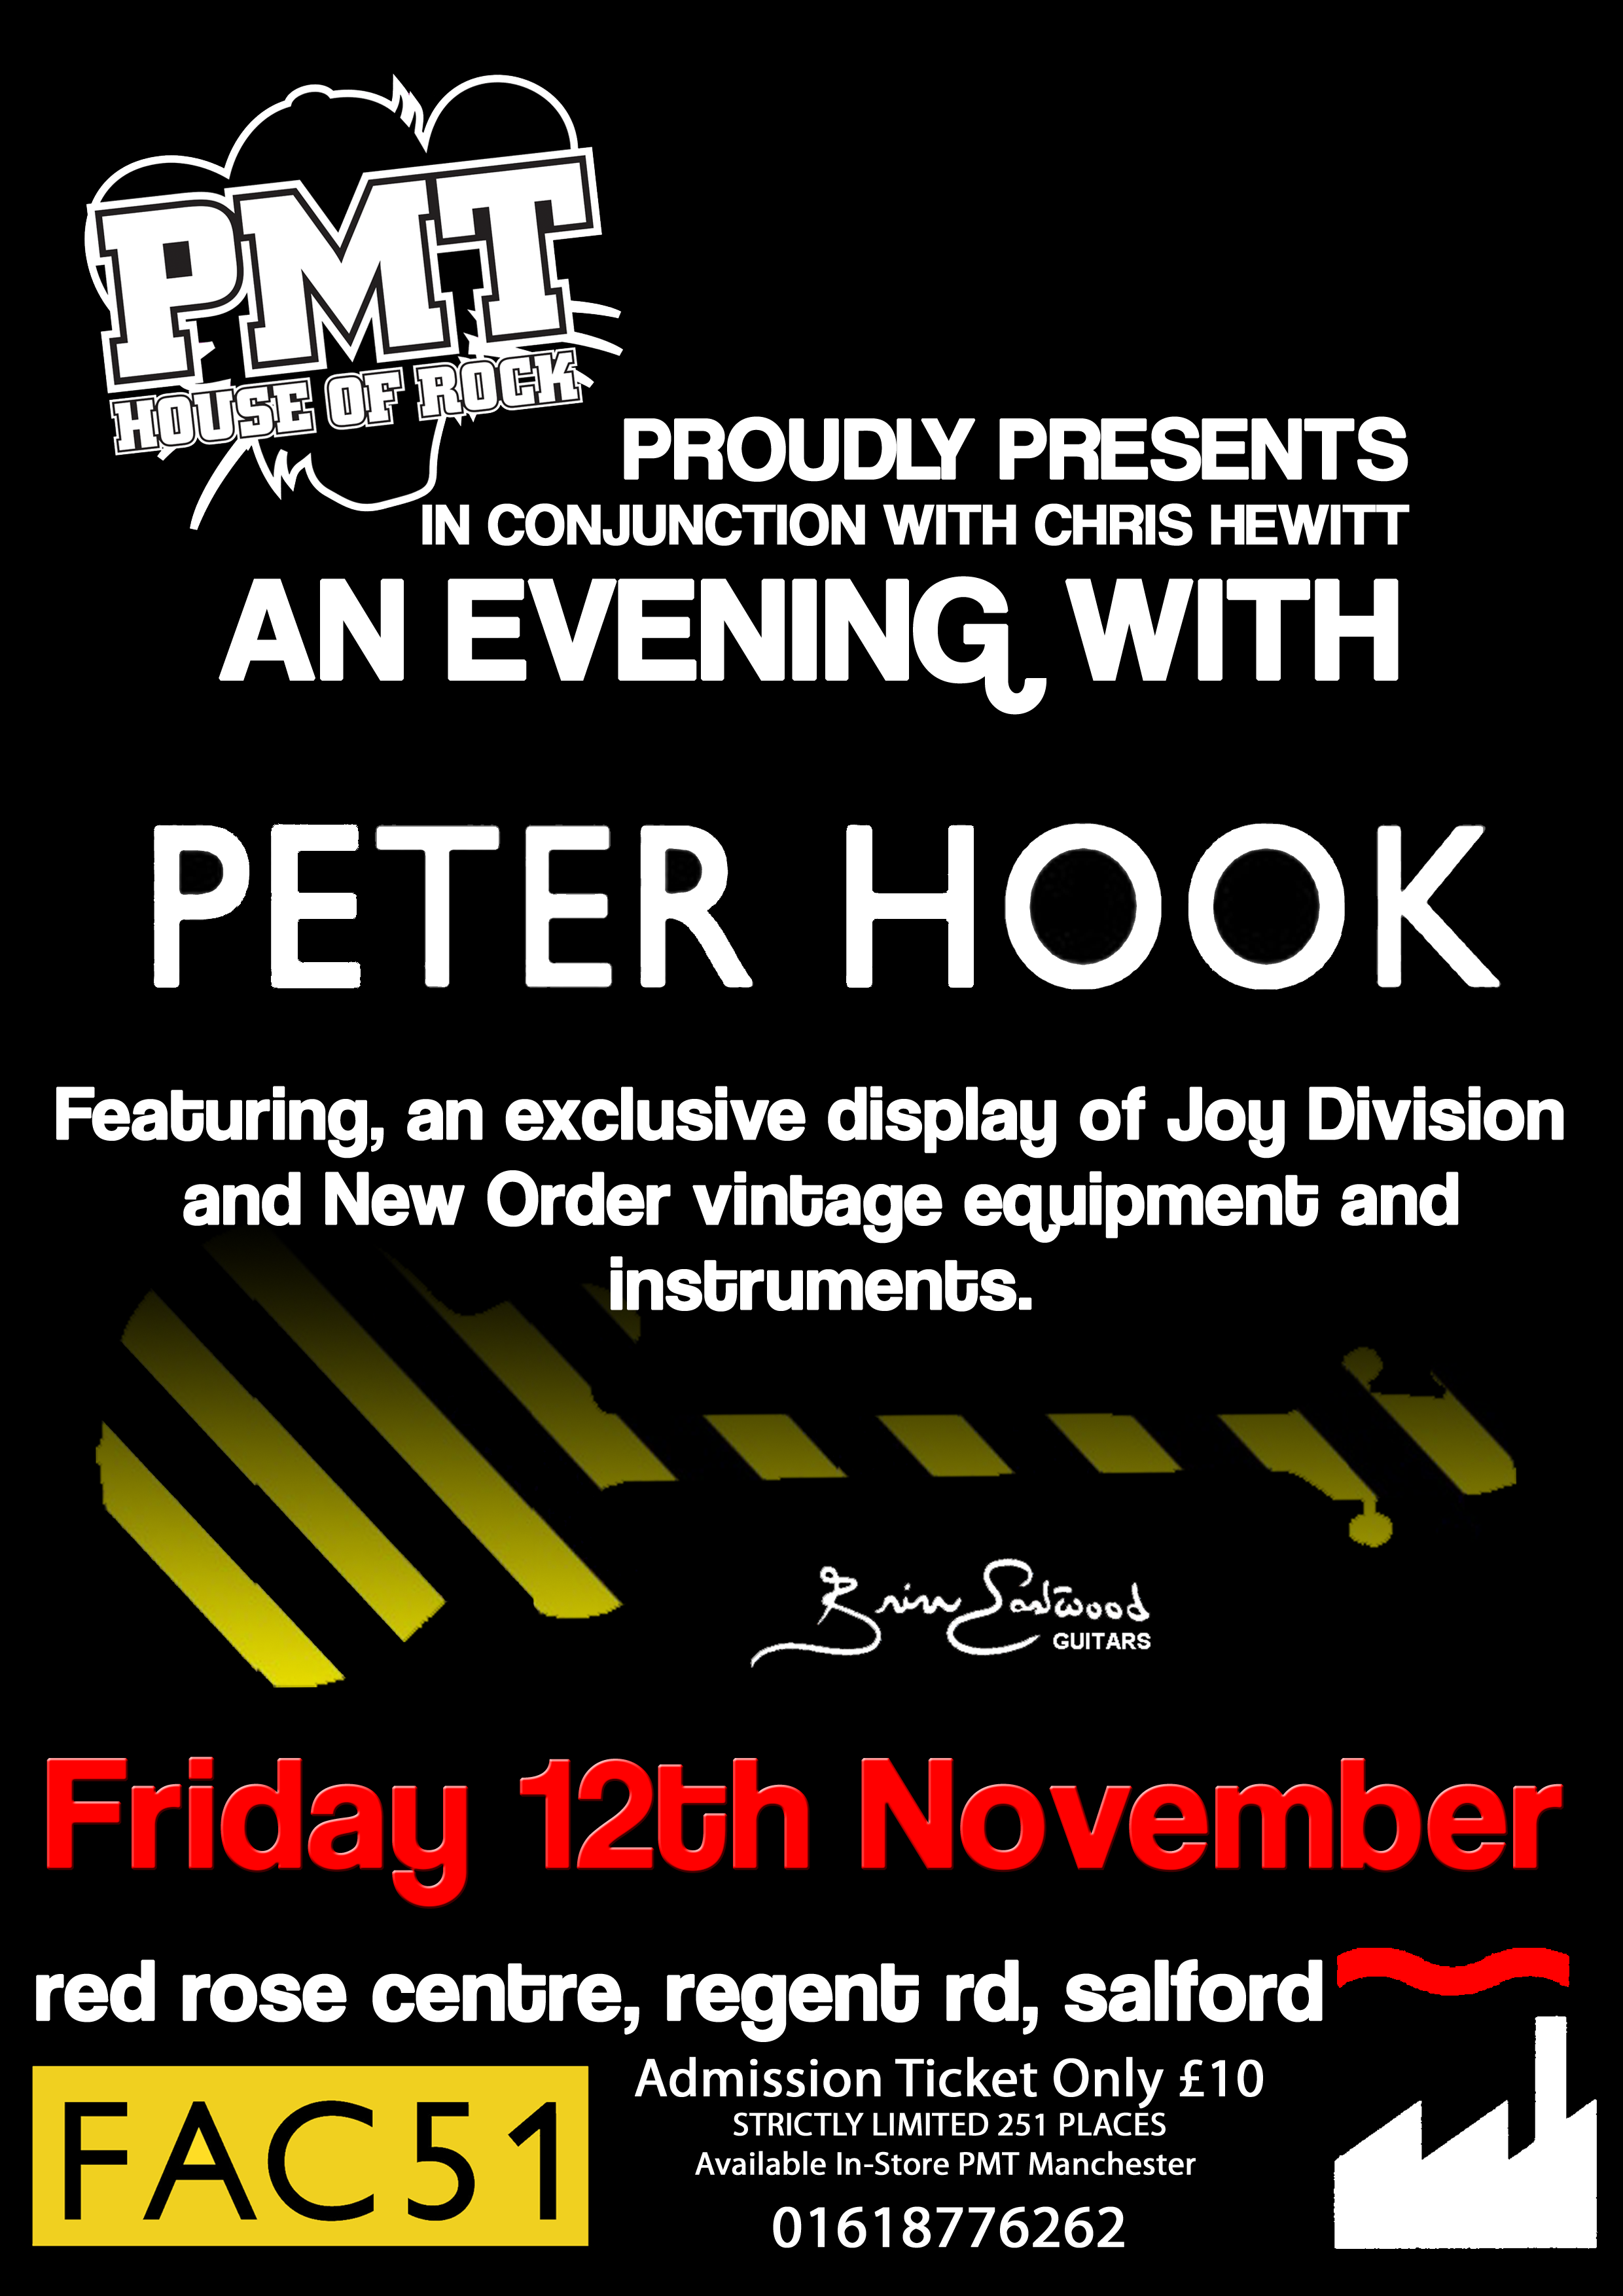 Joy Division New Order The Guitar Wiring Blog Diagrams And Tips November 2010 Chris Hewitt Proudly Present An Evening With Peter Hook Live At Professional Music Technology Regent Rd Salford On Friday 12th